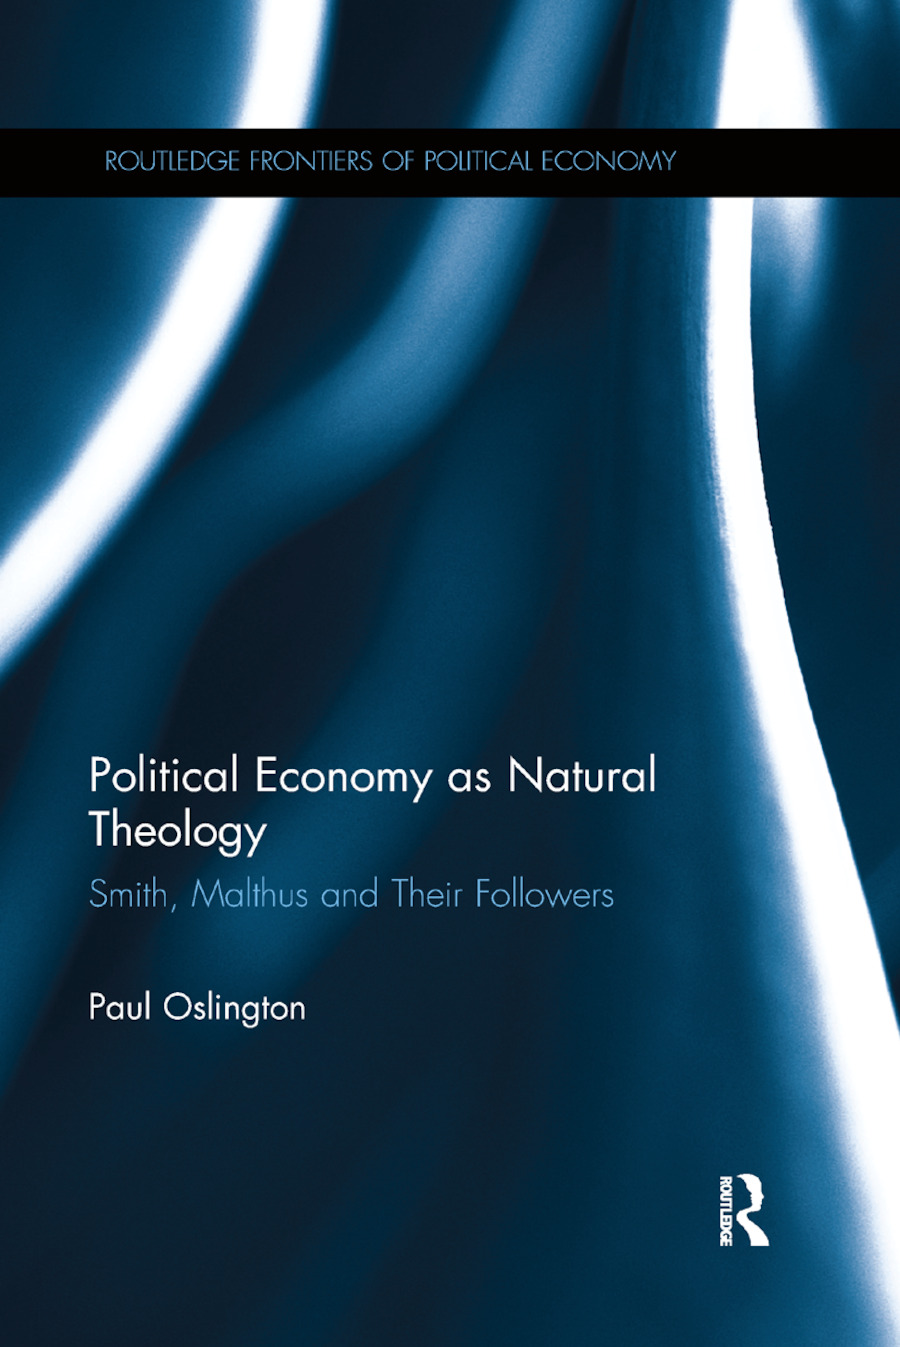 Political Economy as Natural Theology: Smith, Malthus and Their Followers book cover